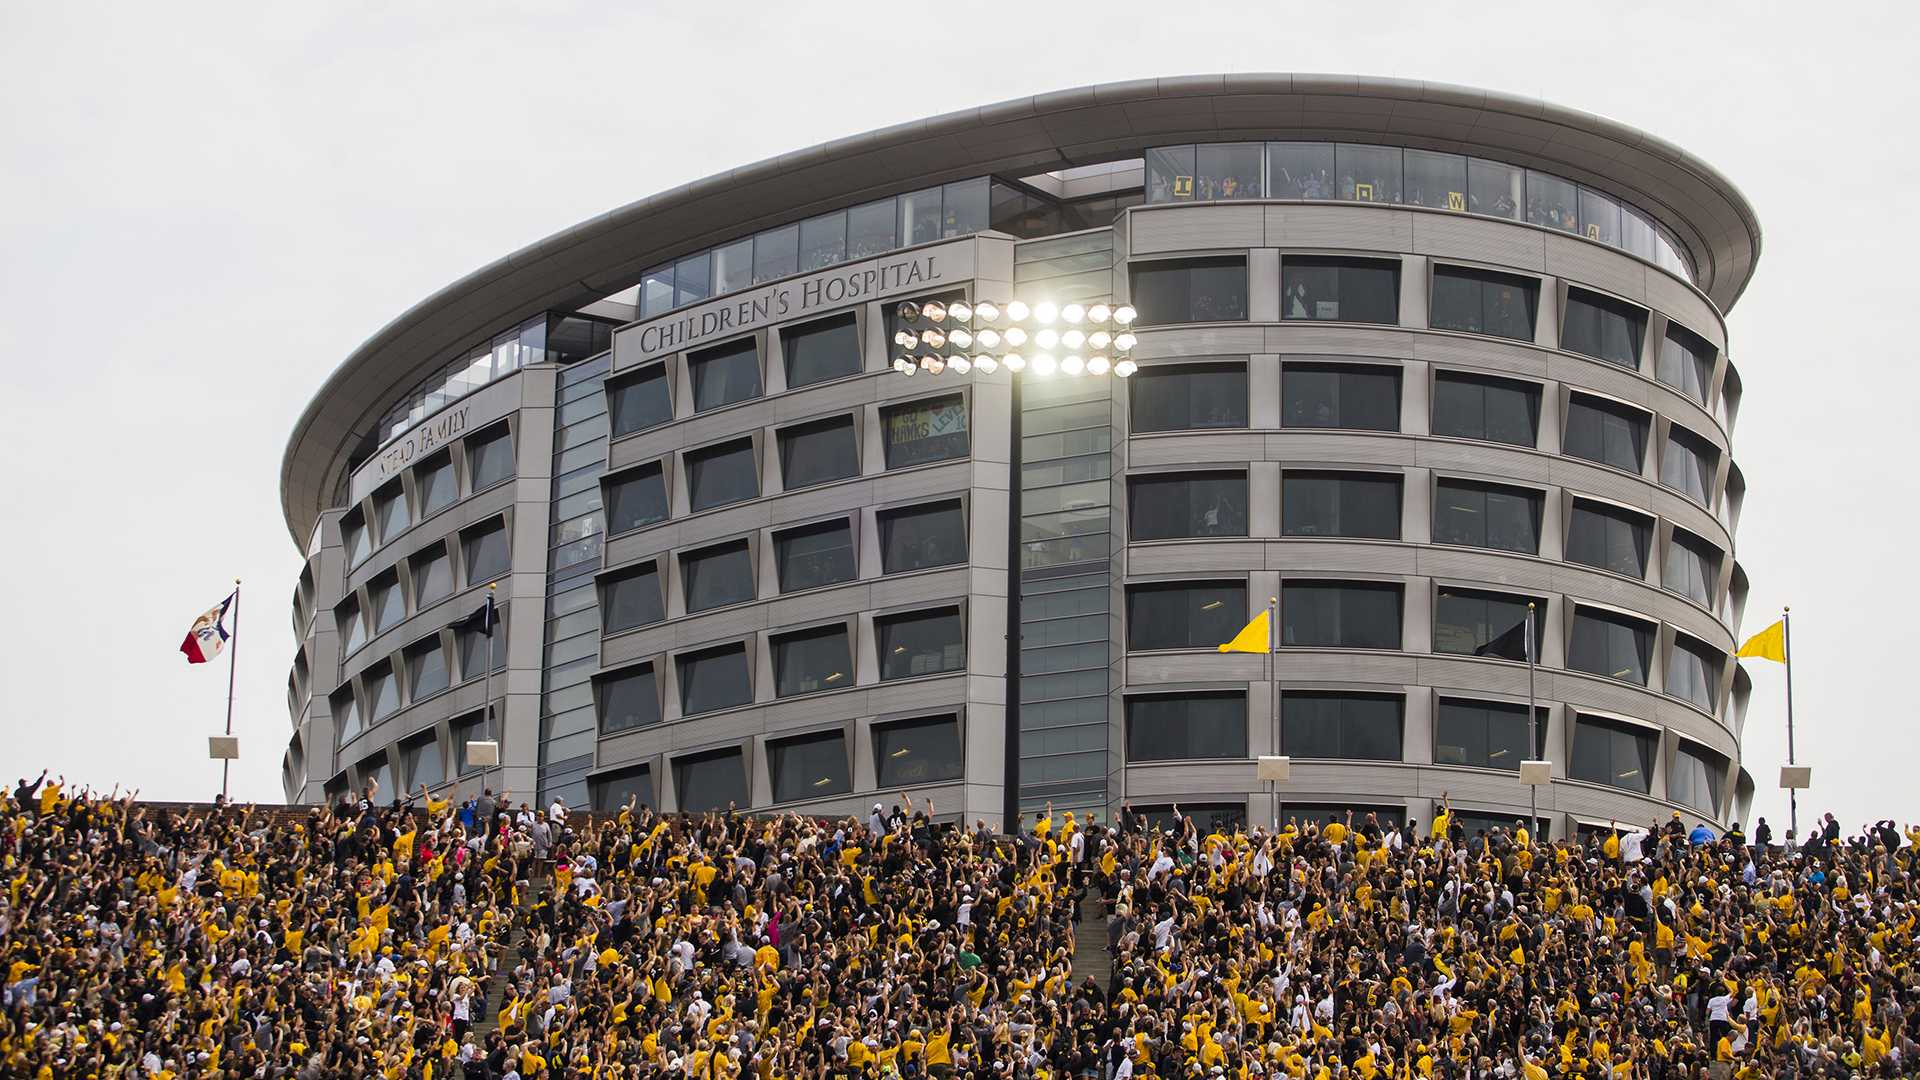 Iowa fans wave to kids in the Stead Family Children's Hospital during an NCAA football game between Iowa and Wyoming in Kinnick Stadium on Saturday, Sept. 2, 2017.